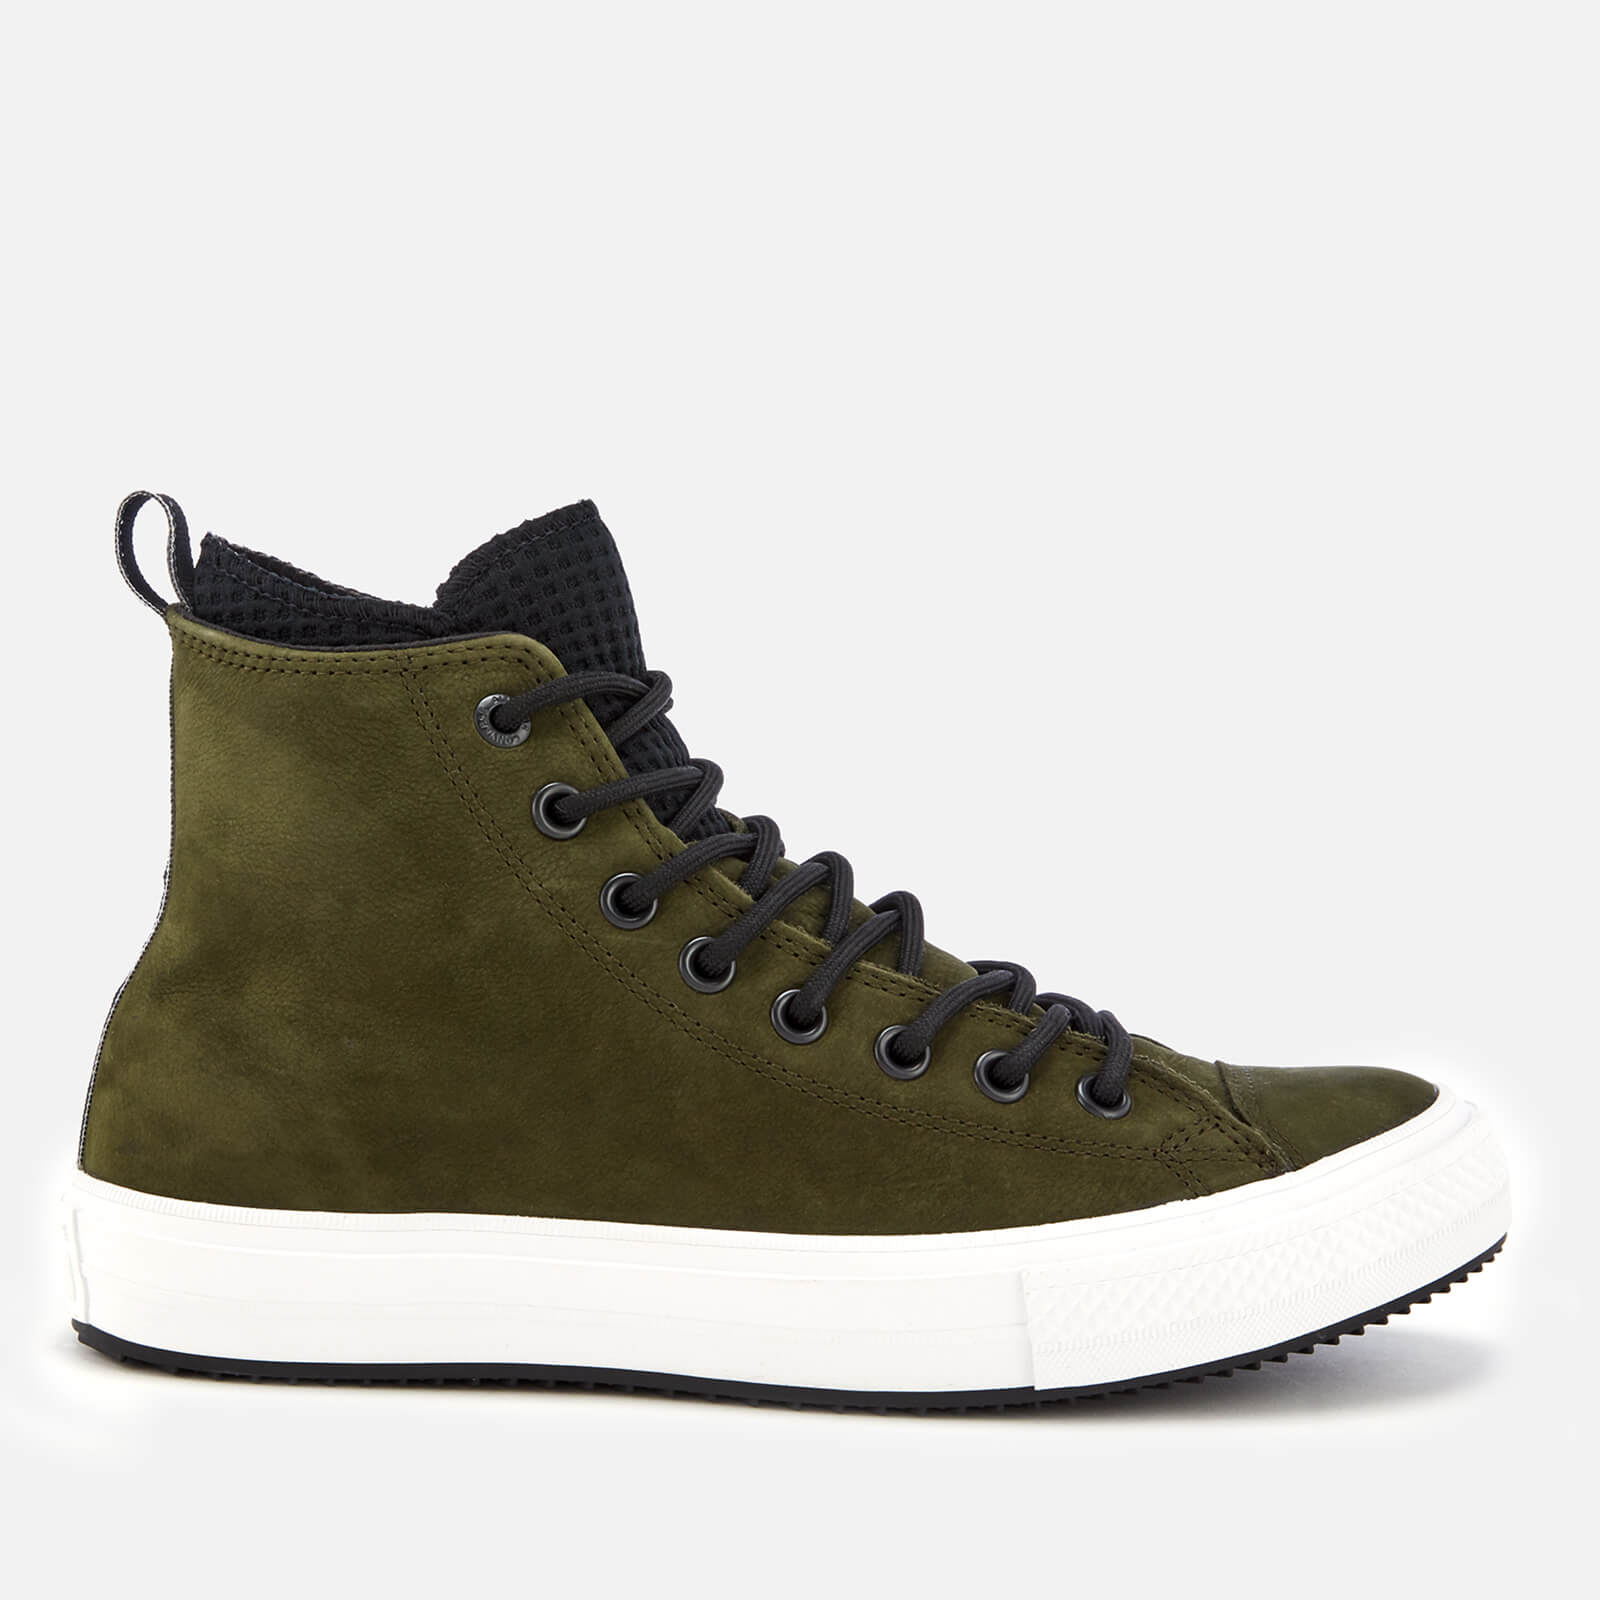 91e1255969b Converse Men s Chuck Taylor All Star Waterproof Boots - Utility Green Black  White - Free UK Delivery over £50